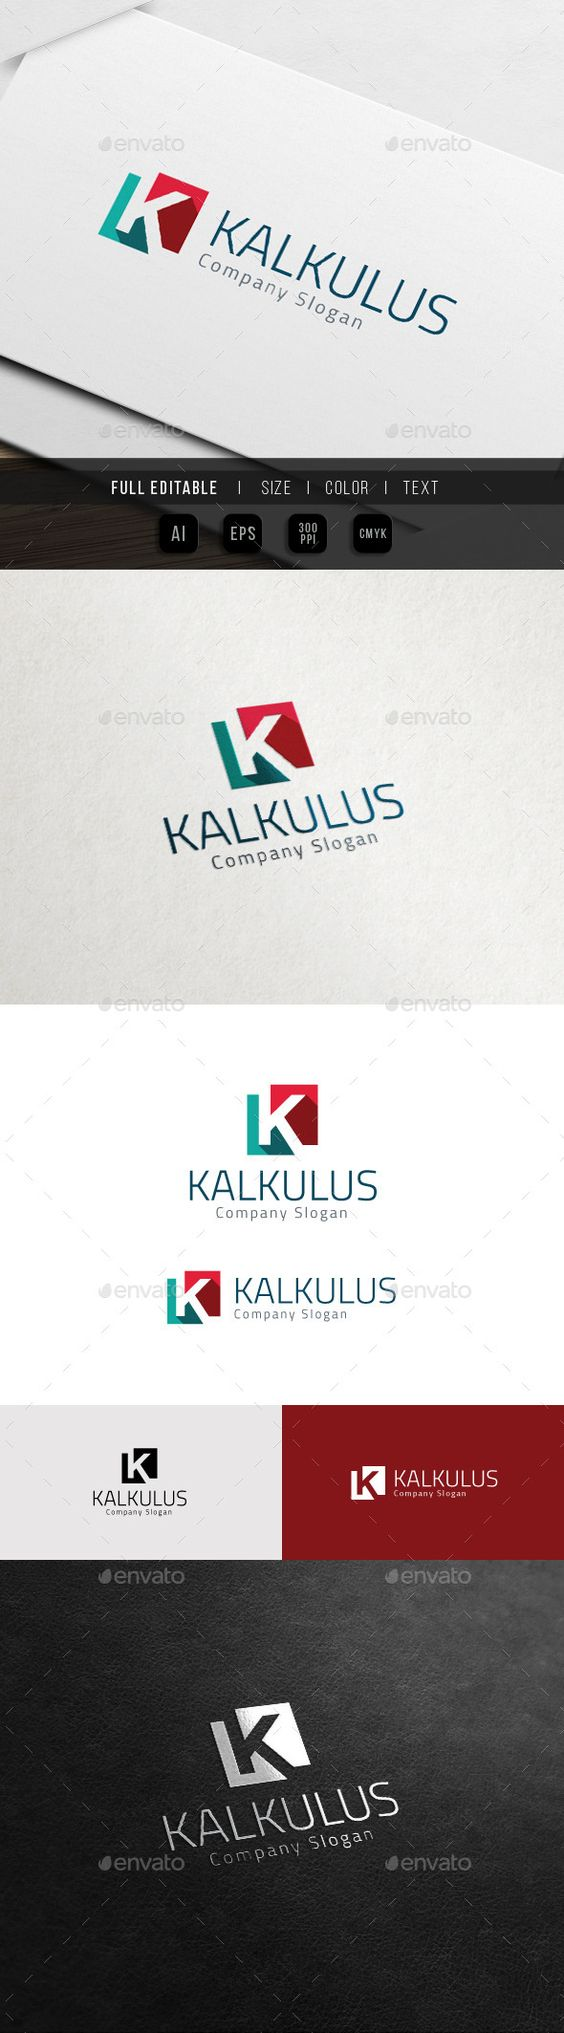 Corporate Brand - Marketing Finance - K Logo - Download…